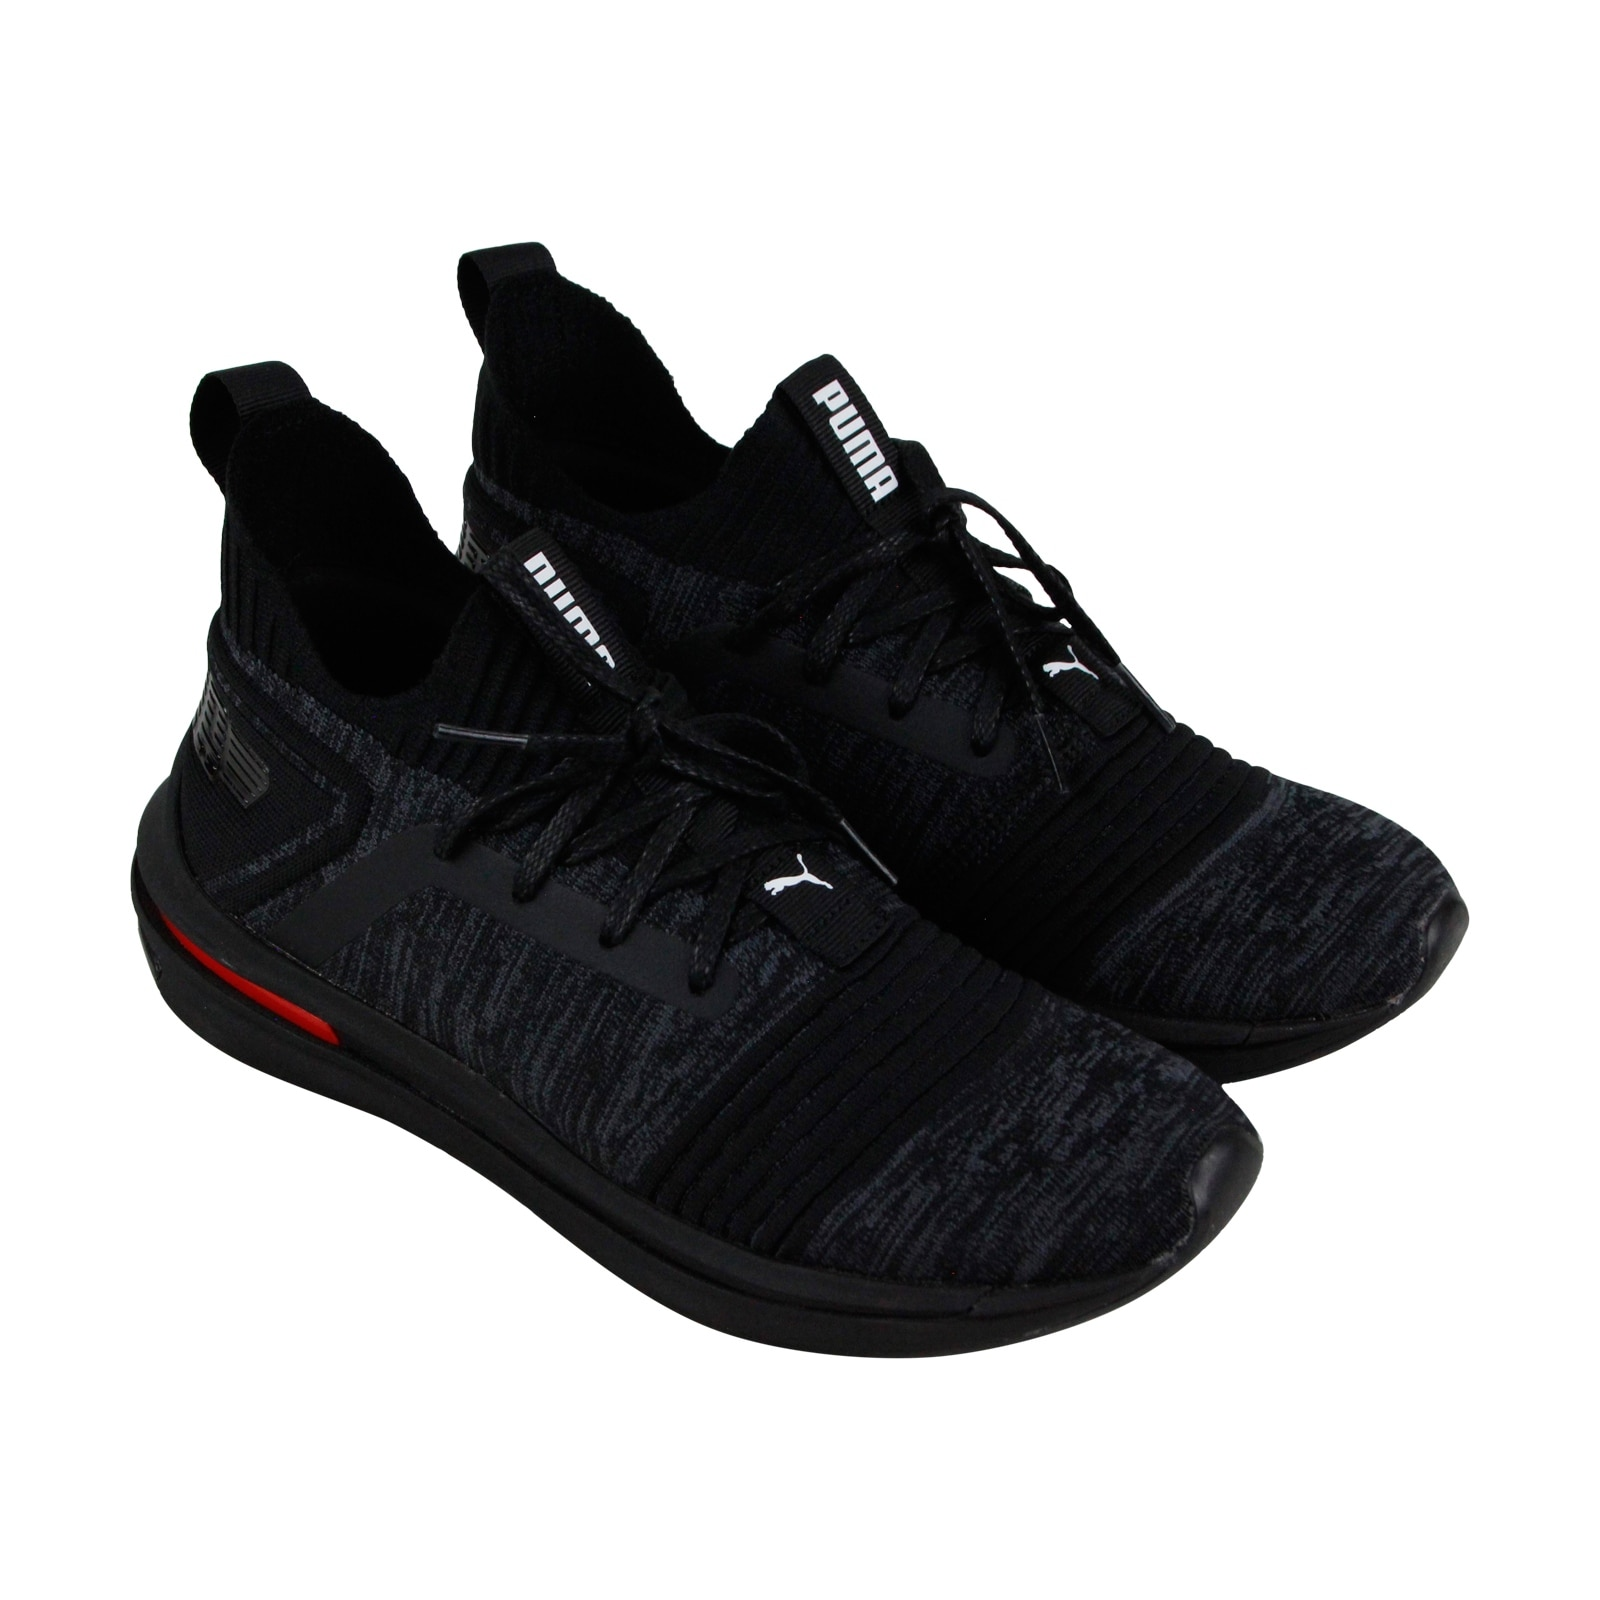 cheap for discount 09411 d1be1 Puma Ignite Limitless Sr Evoknit Mens Black Textile Athletic Training Shoes